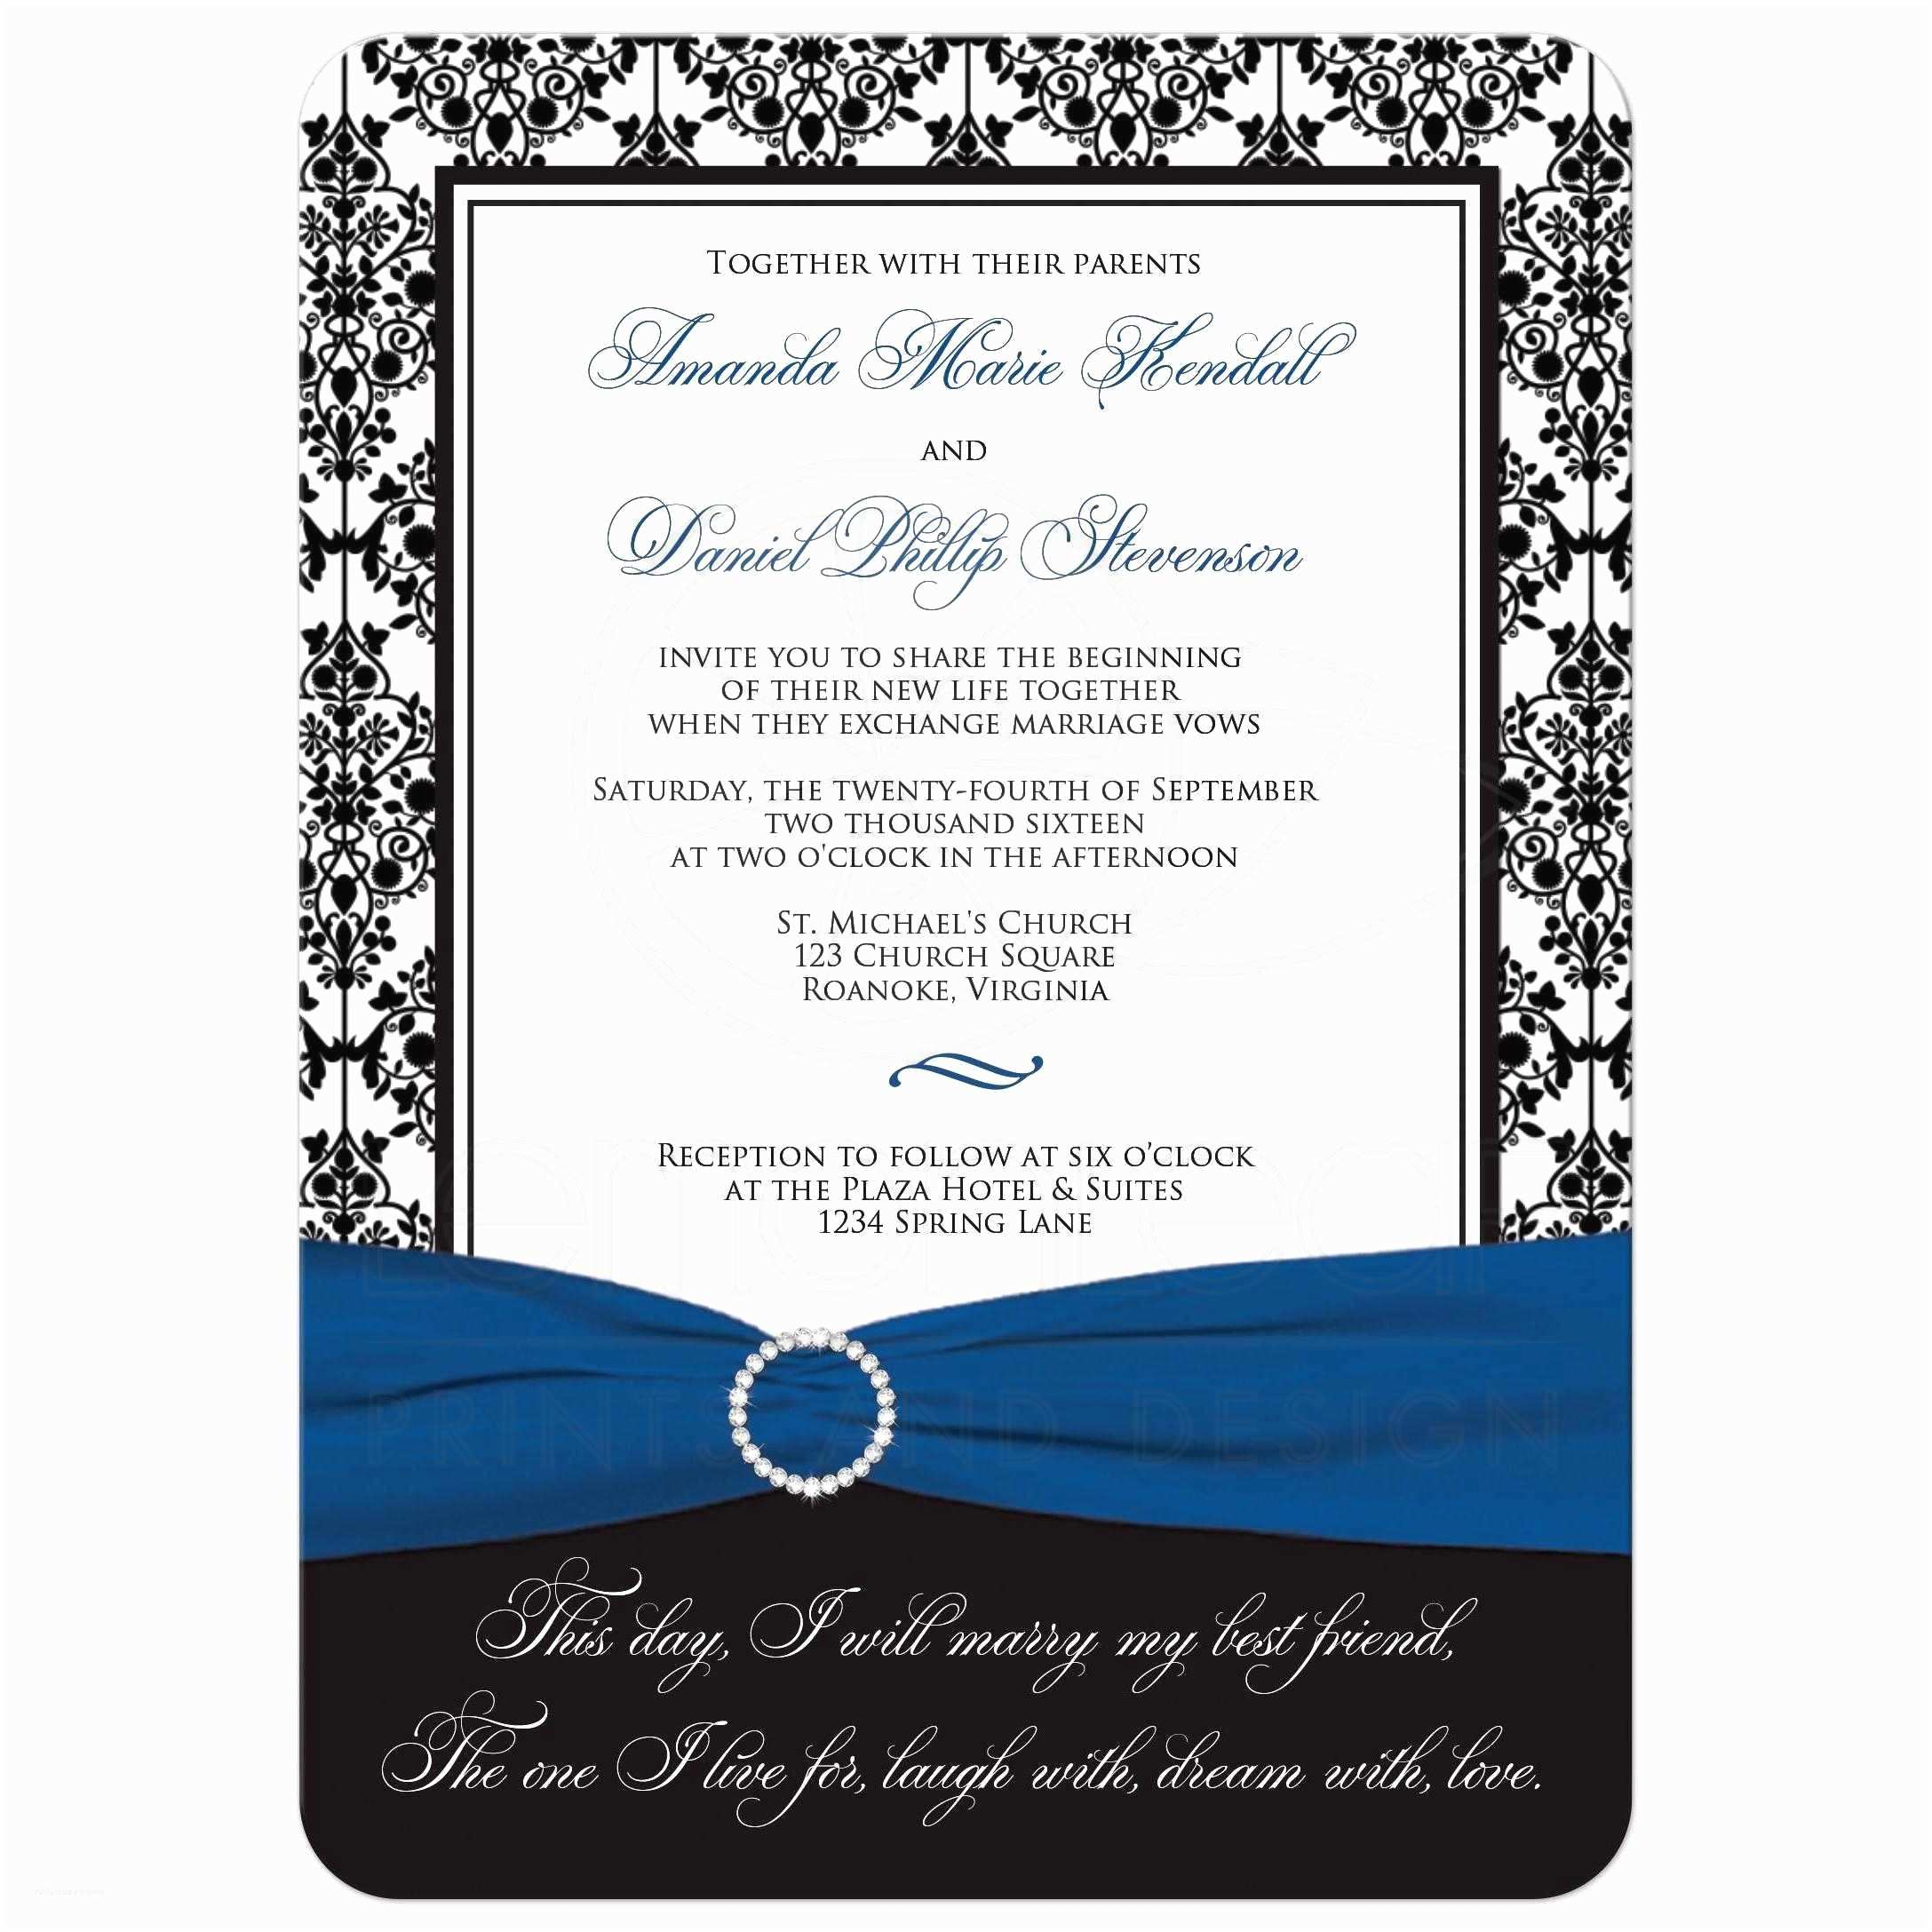 Ribbon Brooch Wedding Invitation Wedding Invitation Black White Damask Printed Royal Blue Ribbon